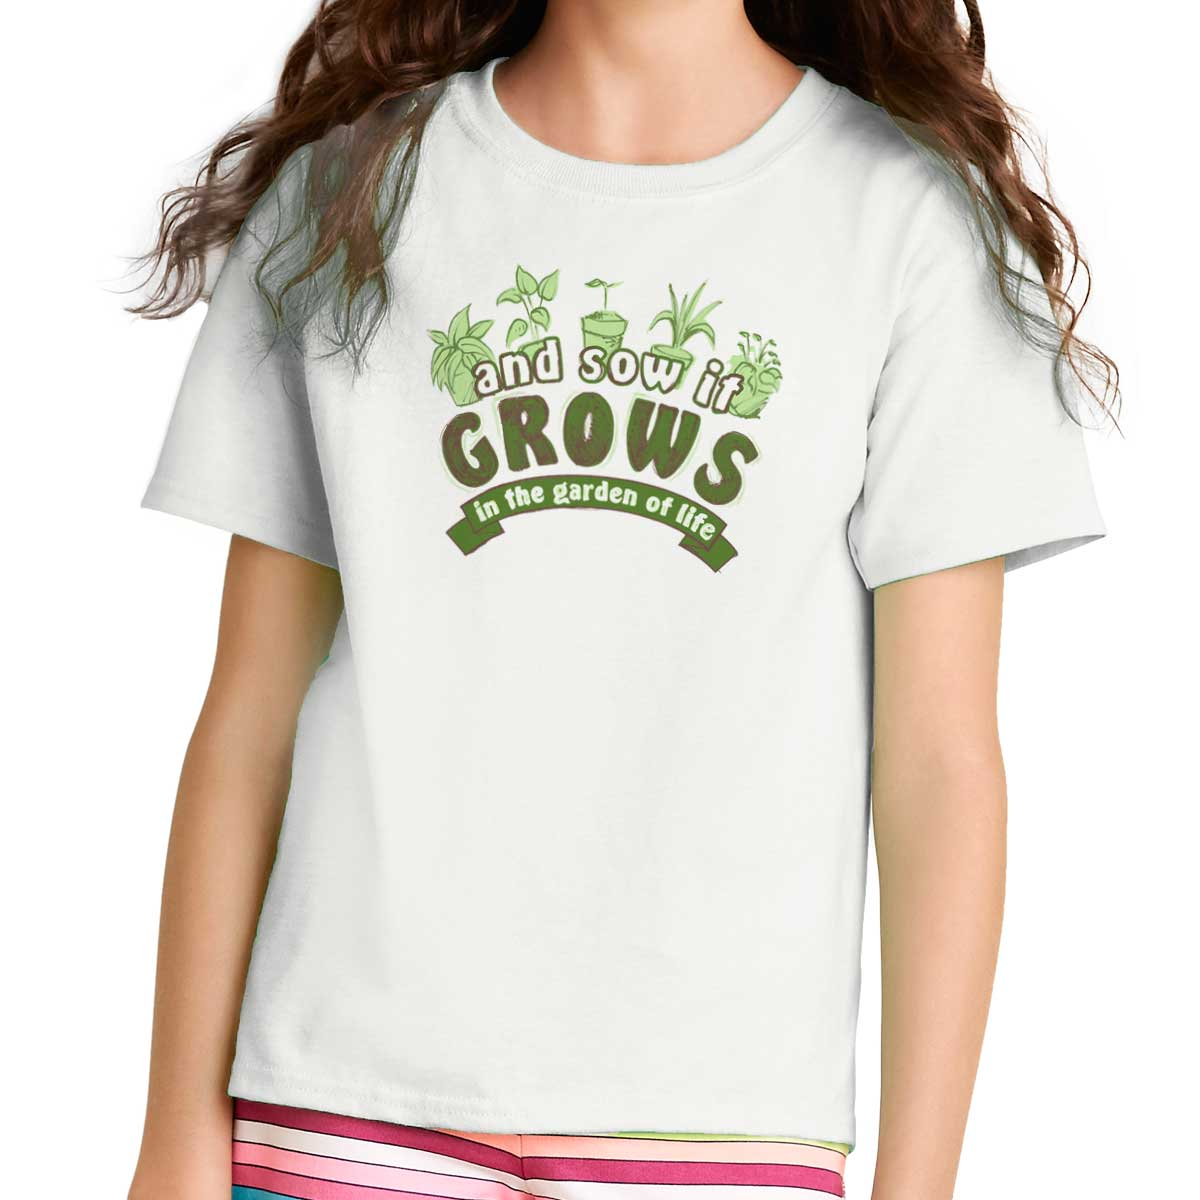 Sow it Grow Garden of Life Funny Shirt | Home Gardening Tools Youth T-Shirt